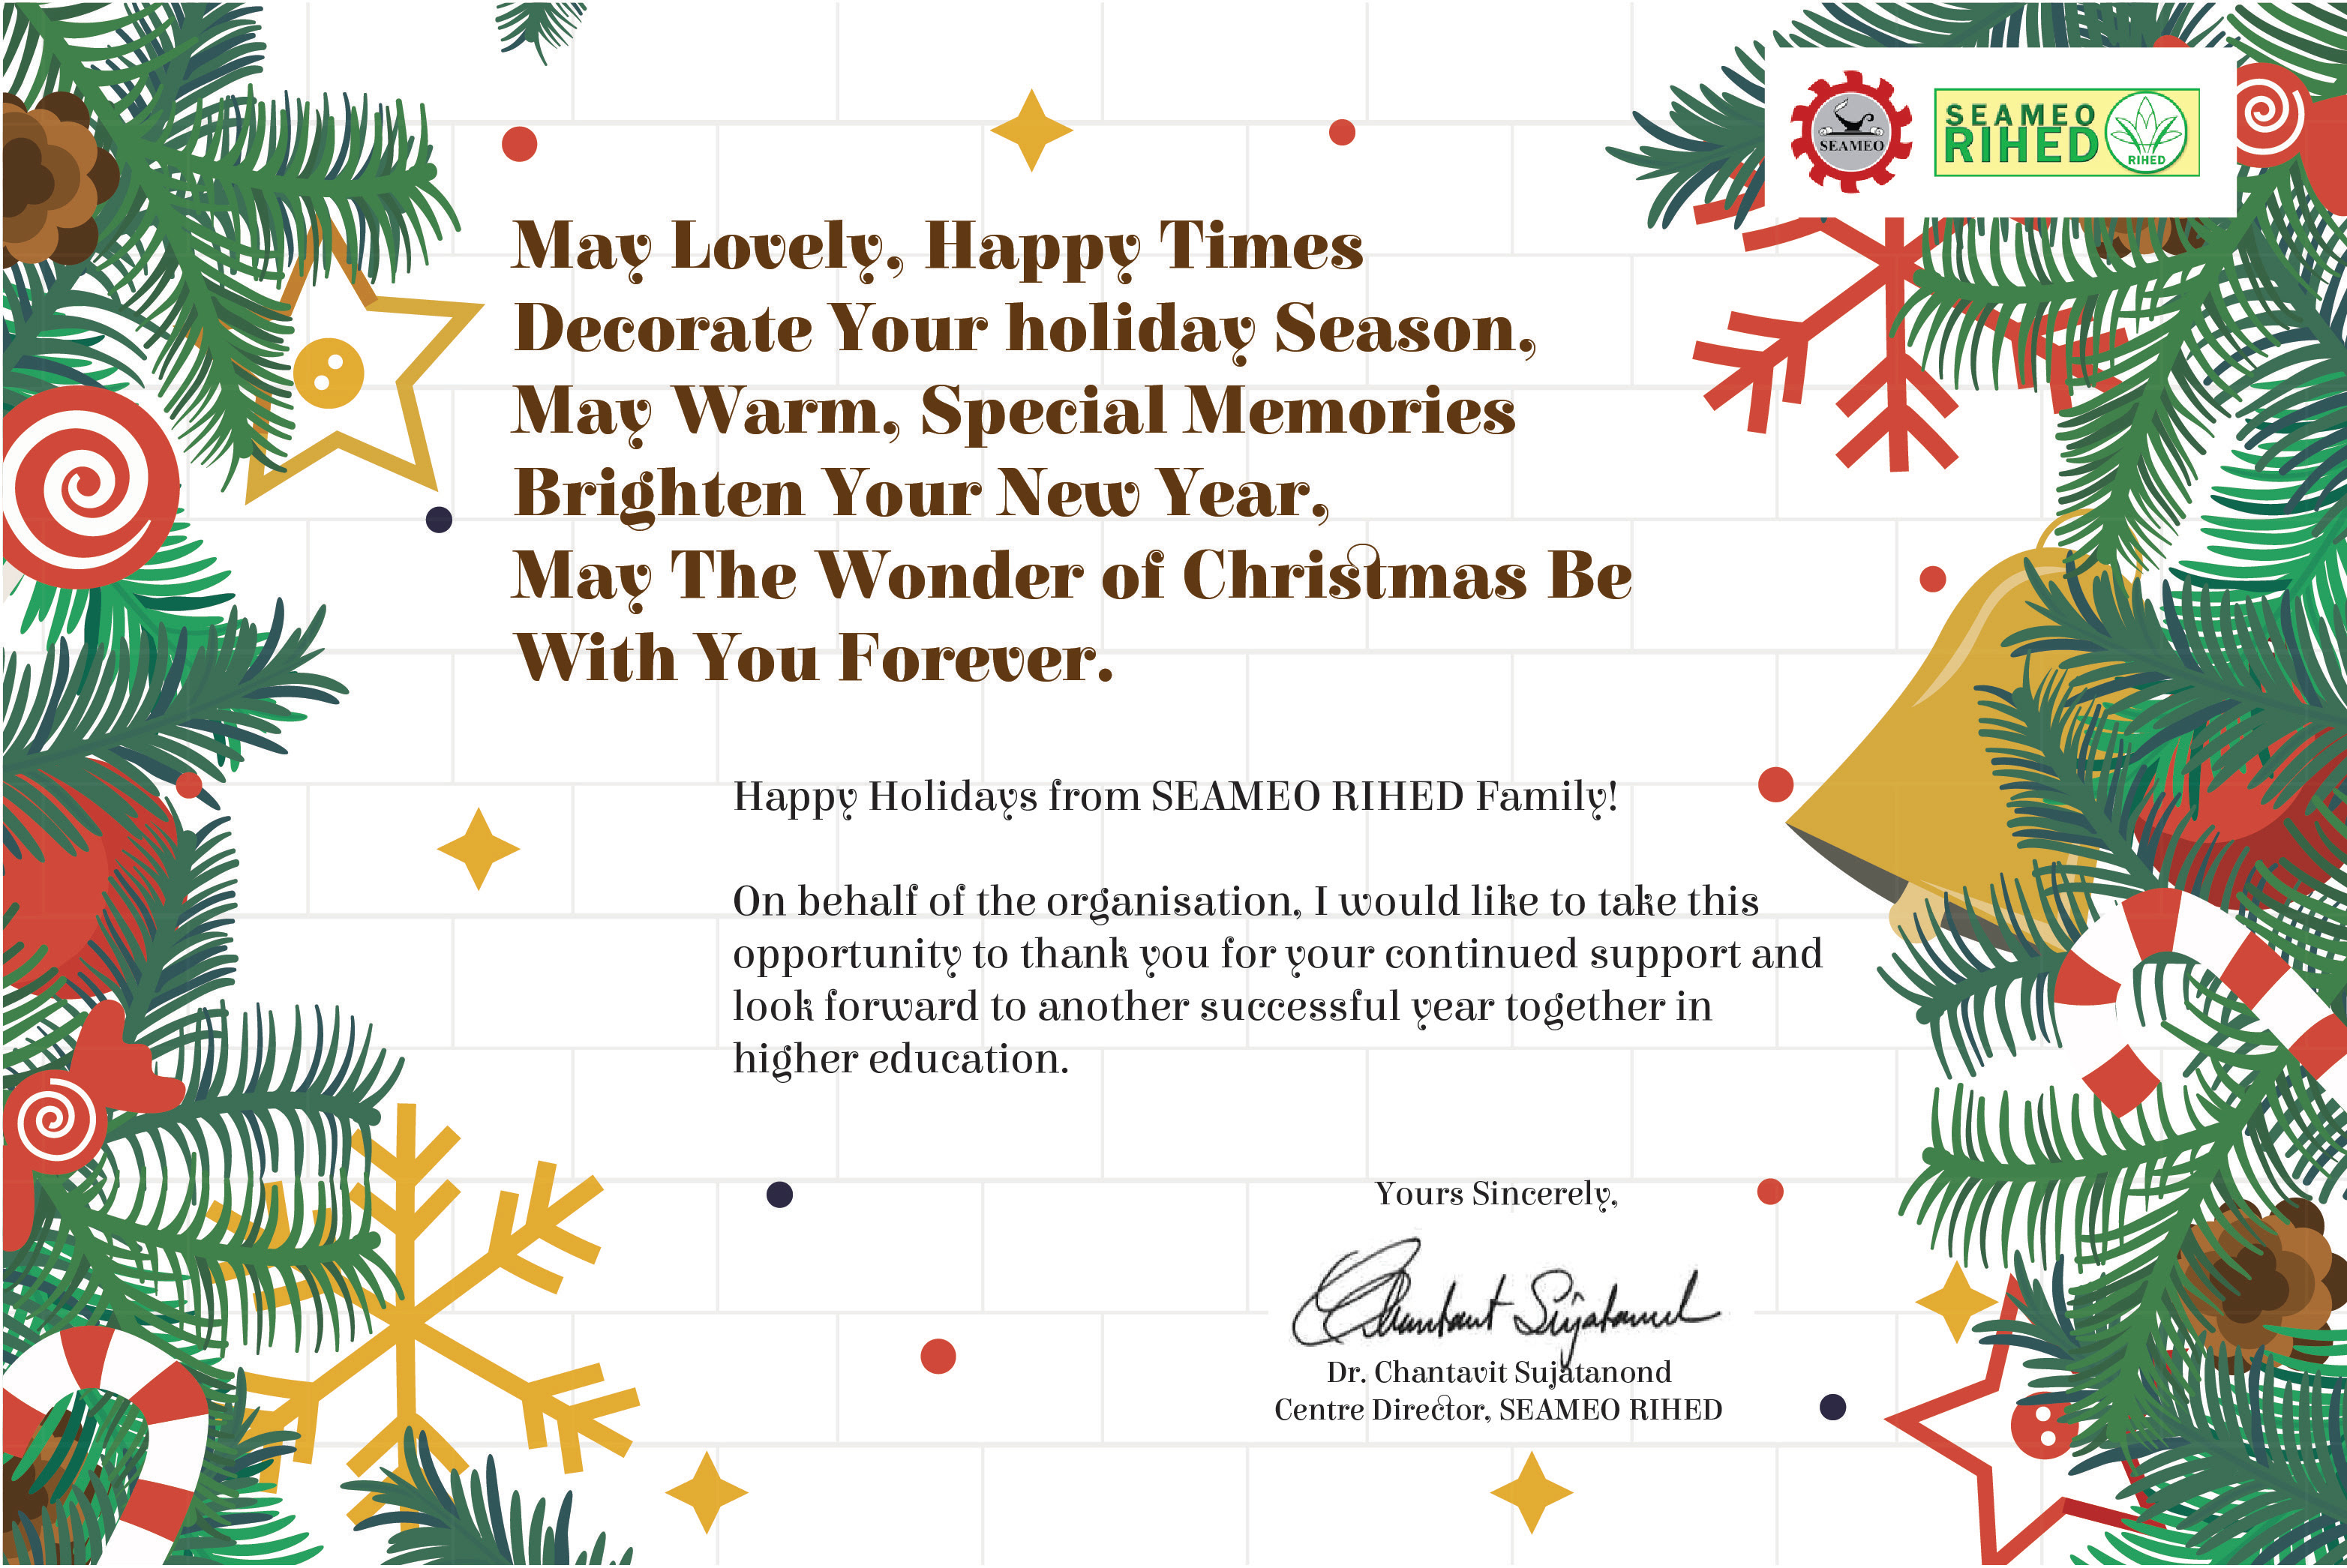 Holiday greetings from seameo rihed seameo rihed holiday greetings from seameo rihed kristyandbryce Gallery